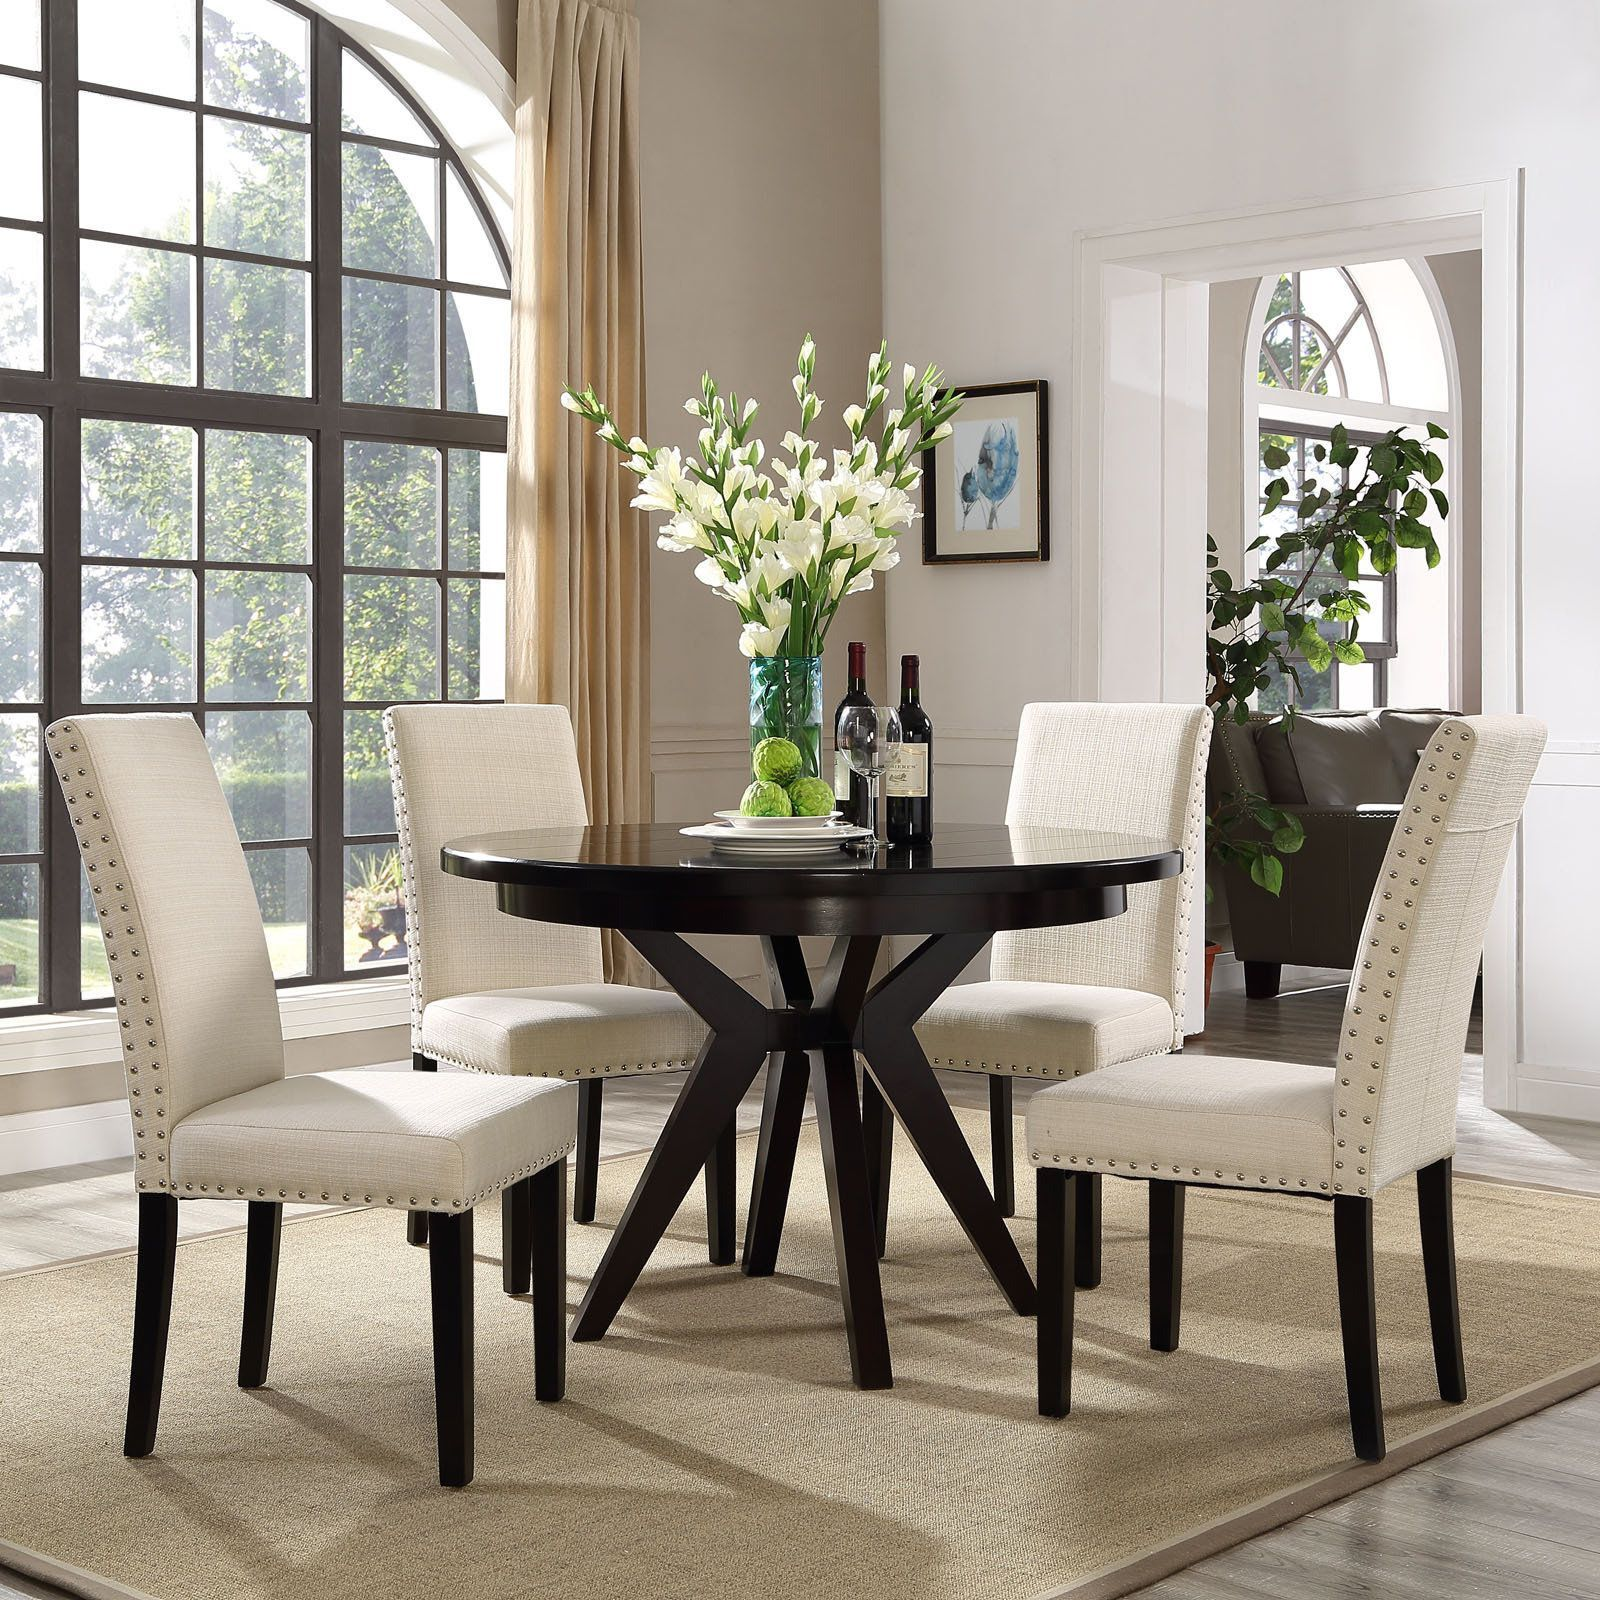 Modway Parcel Upholstered Grey Beige Dining Side Chair Gray Beauteous Upholstered Dining Room Chairs Inspiration Design